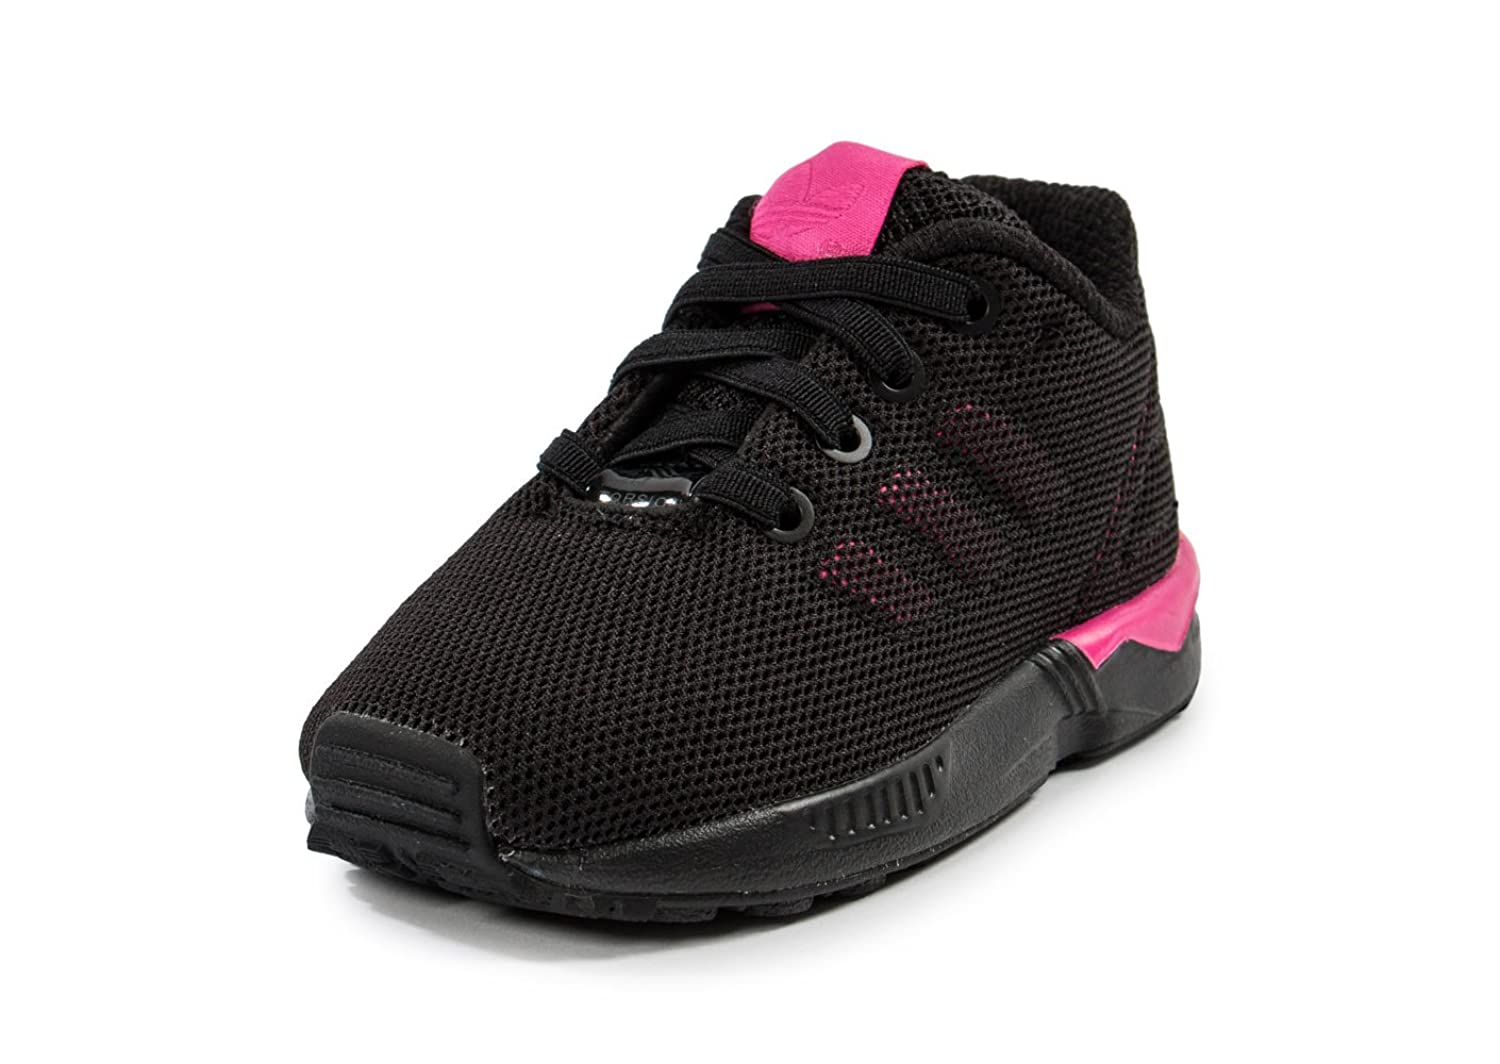 adidas Infant Girls Originals Zx Flux Trainers in Black Pink-Infant Girls:  Amazon.co.uk: Shoes & Bags